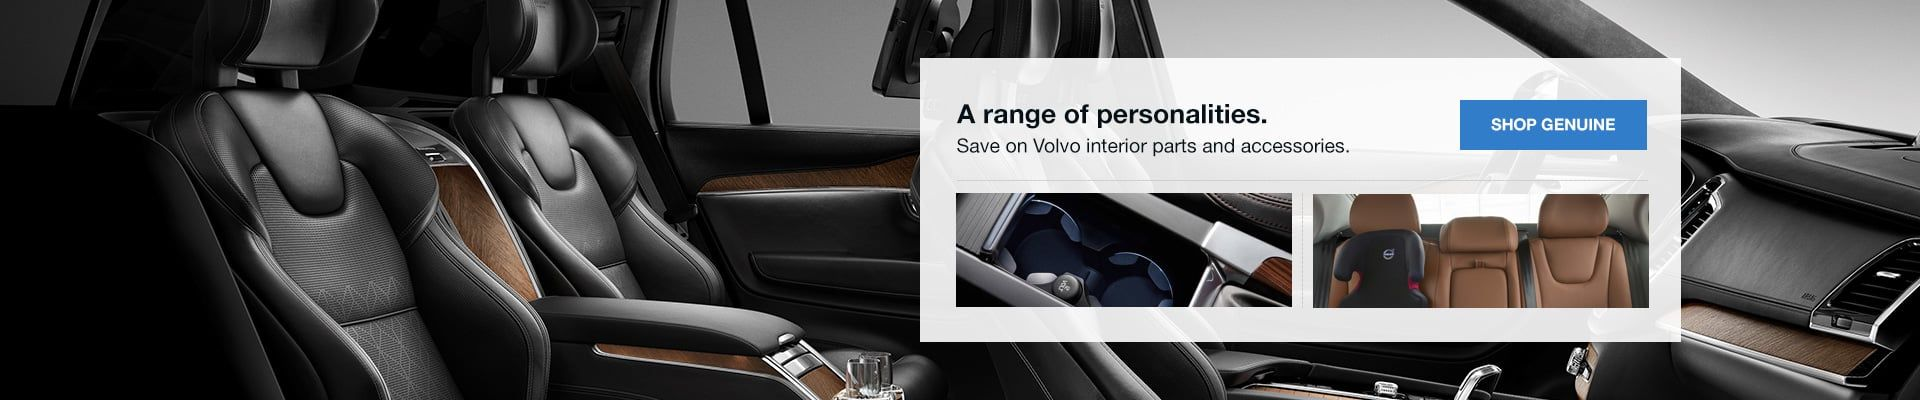 Volvo Genuine Interior Parts